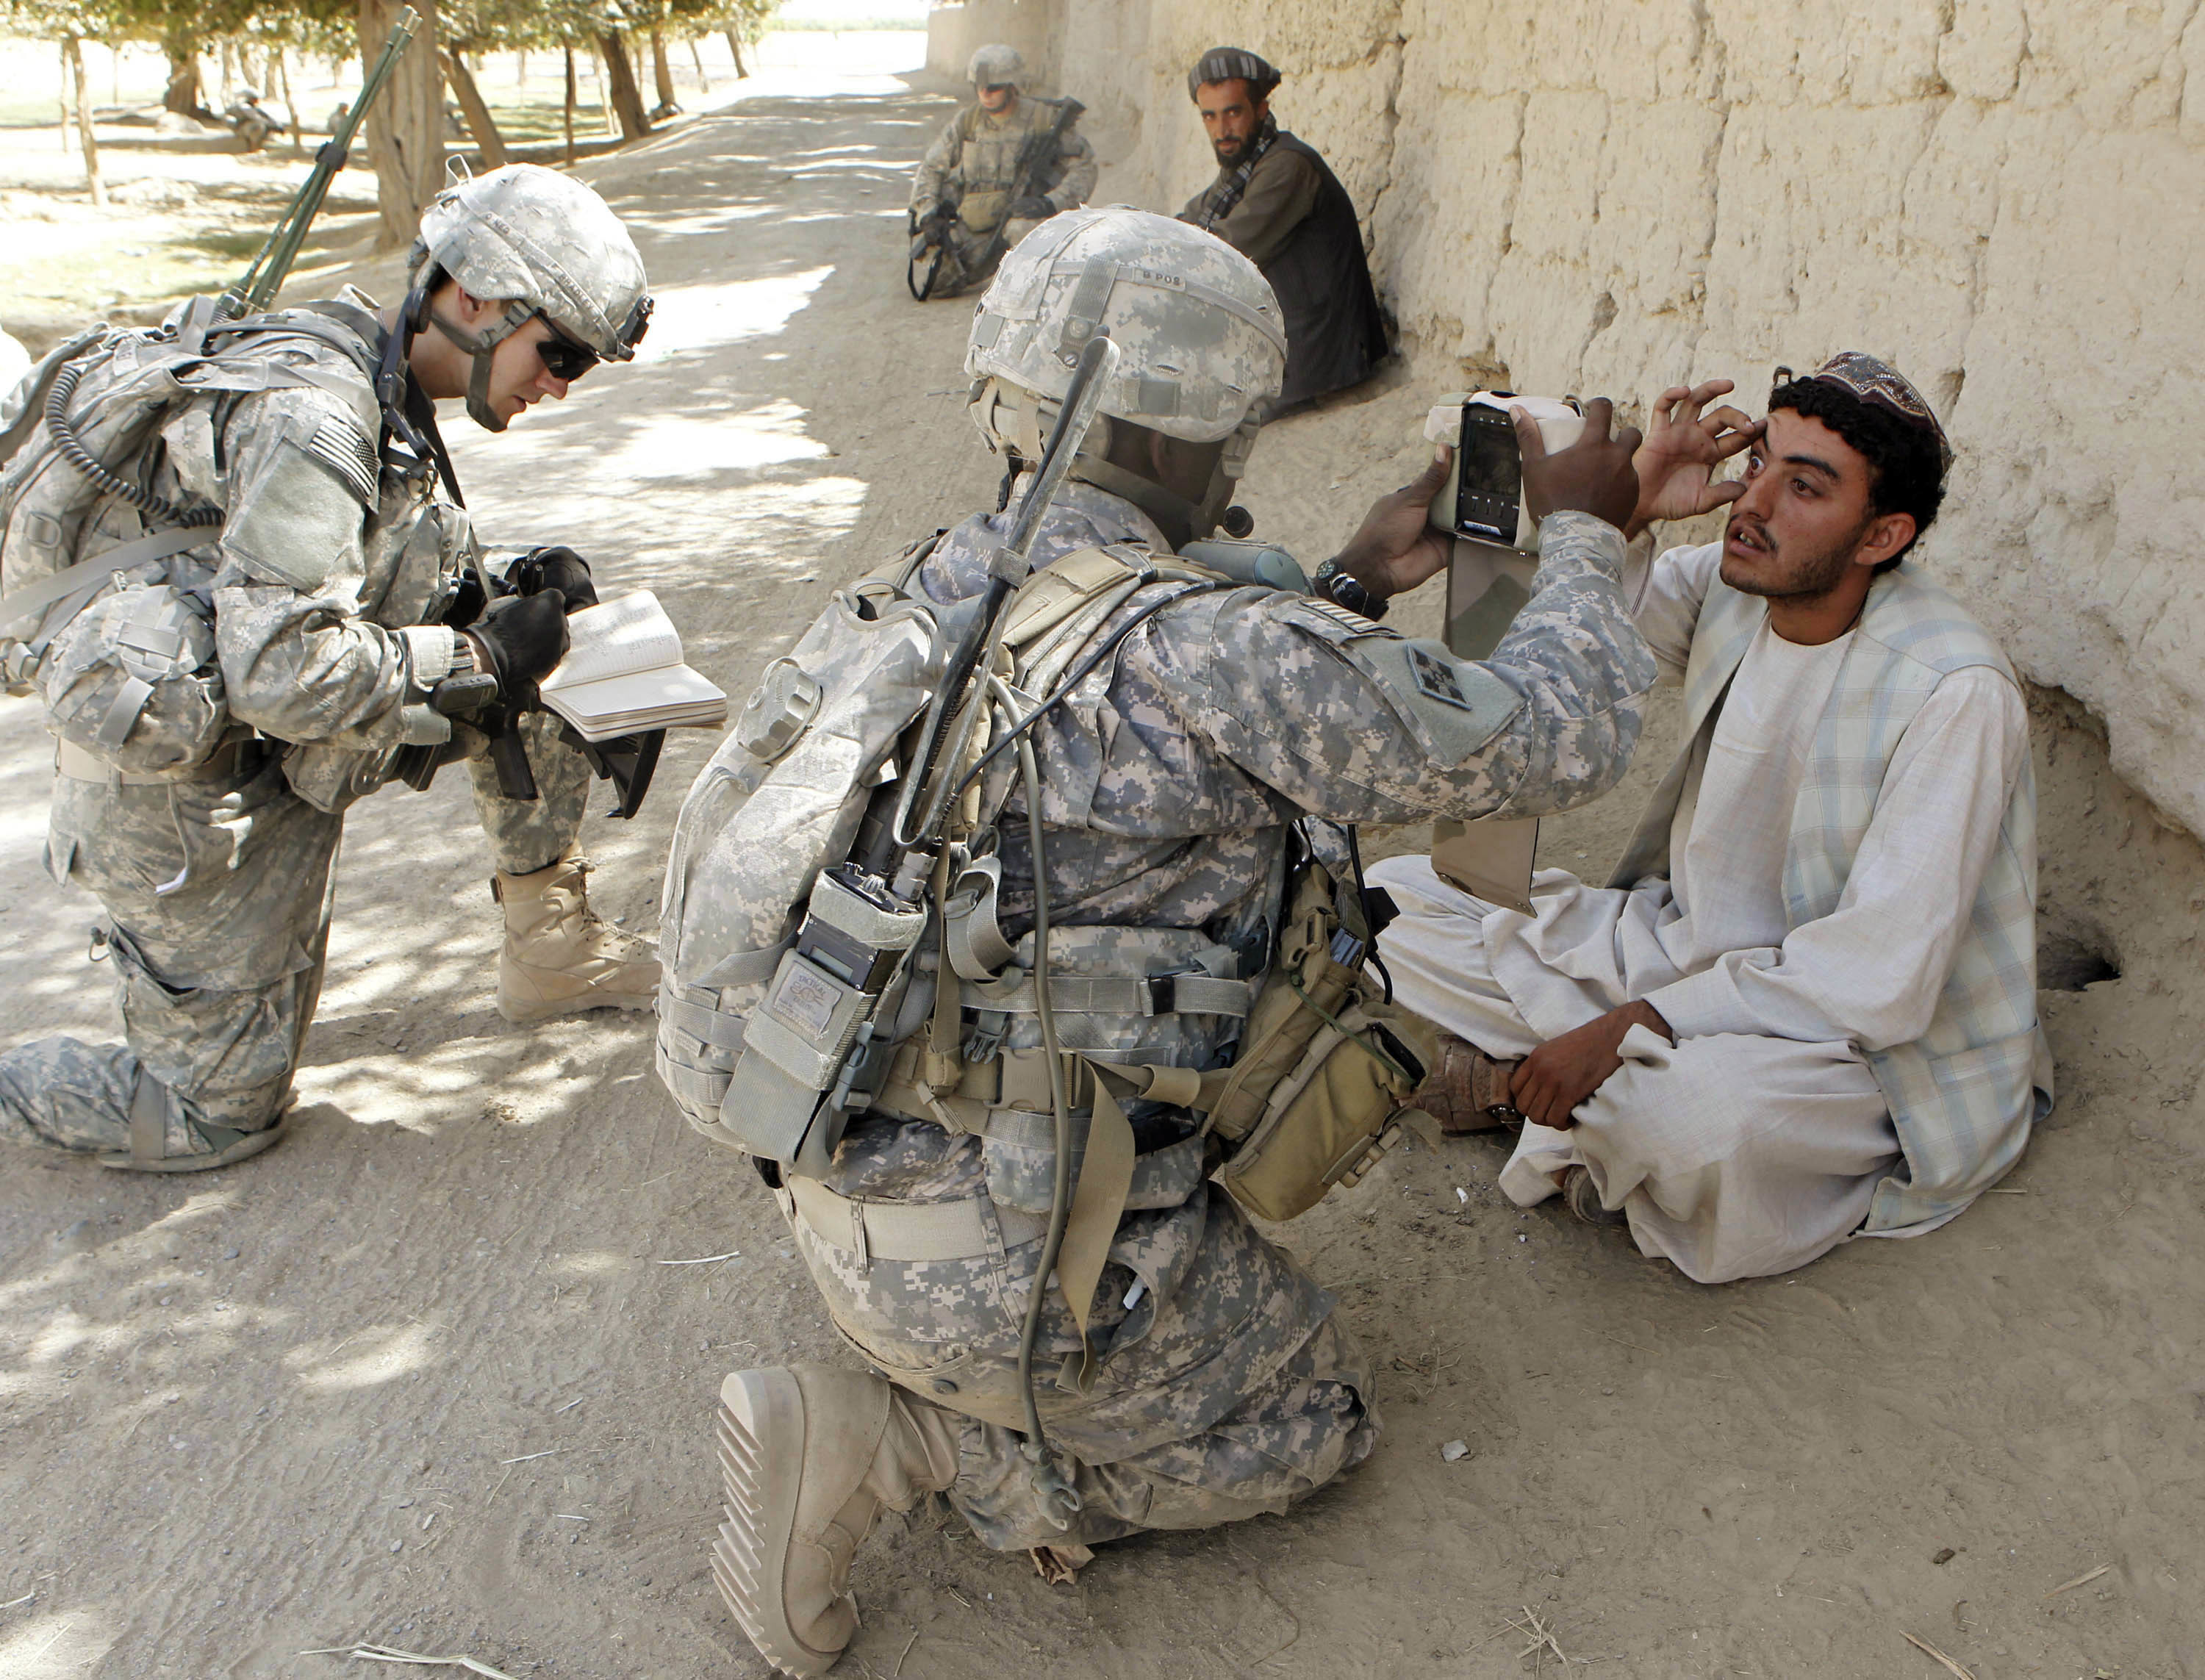 U.S. soldiers from 3rd Platoon, Bravo Company, 1-22 Infantry Battalion collect biometric data from two villagers during a patrol in Shingkay village in Kandahar province in southern Afghanistan October 4, 2010.  REUTERS/Erik de Castro   (AFGHANISTAN - Tags: MILITARY CONFLICT) - GM1E6A503B601